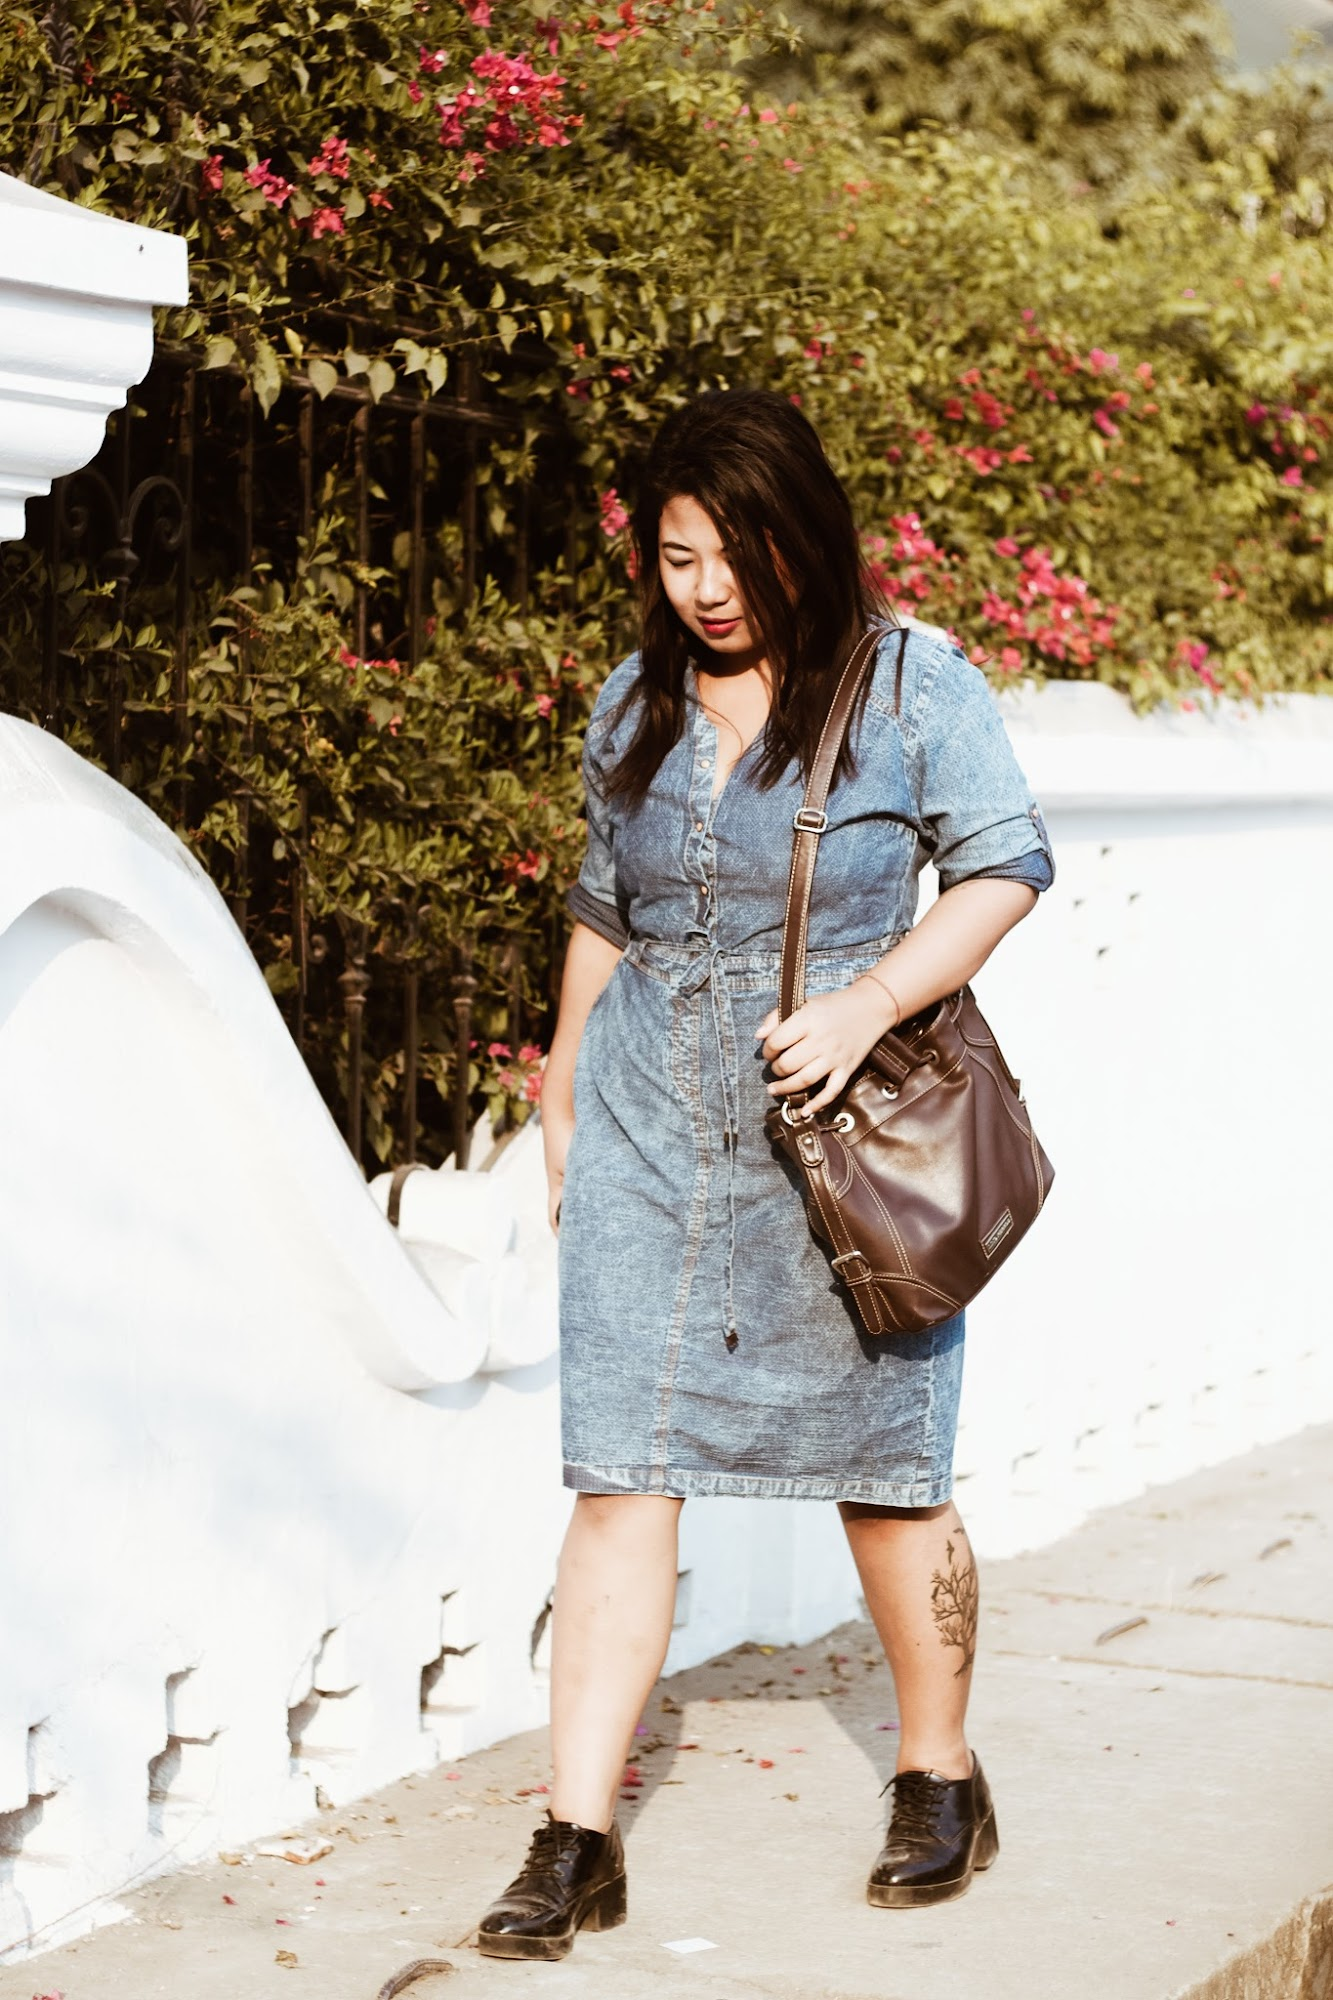 SelestyMe by Chayanika Rabha Indian fashion & Lifestyle blog in collaboration with Wearing: Shirt Dress via Myntra, Forever21 Shoe & Lino Perros bag